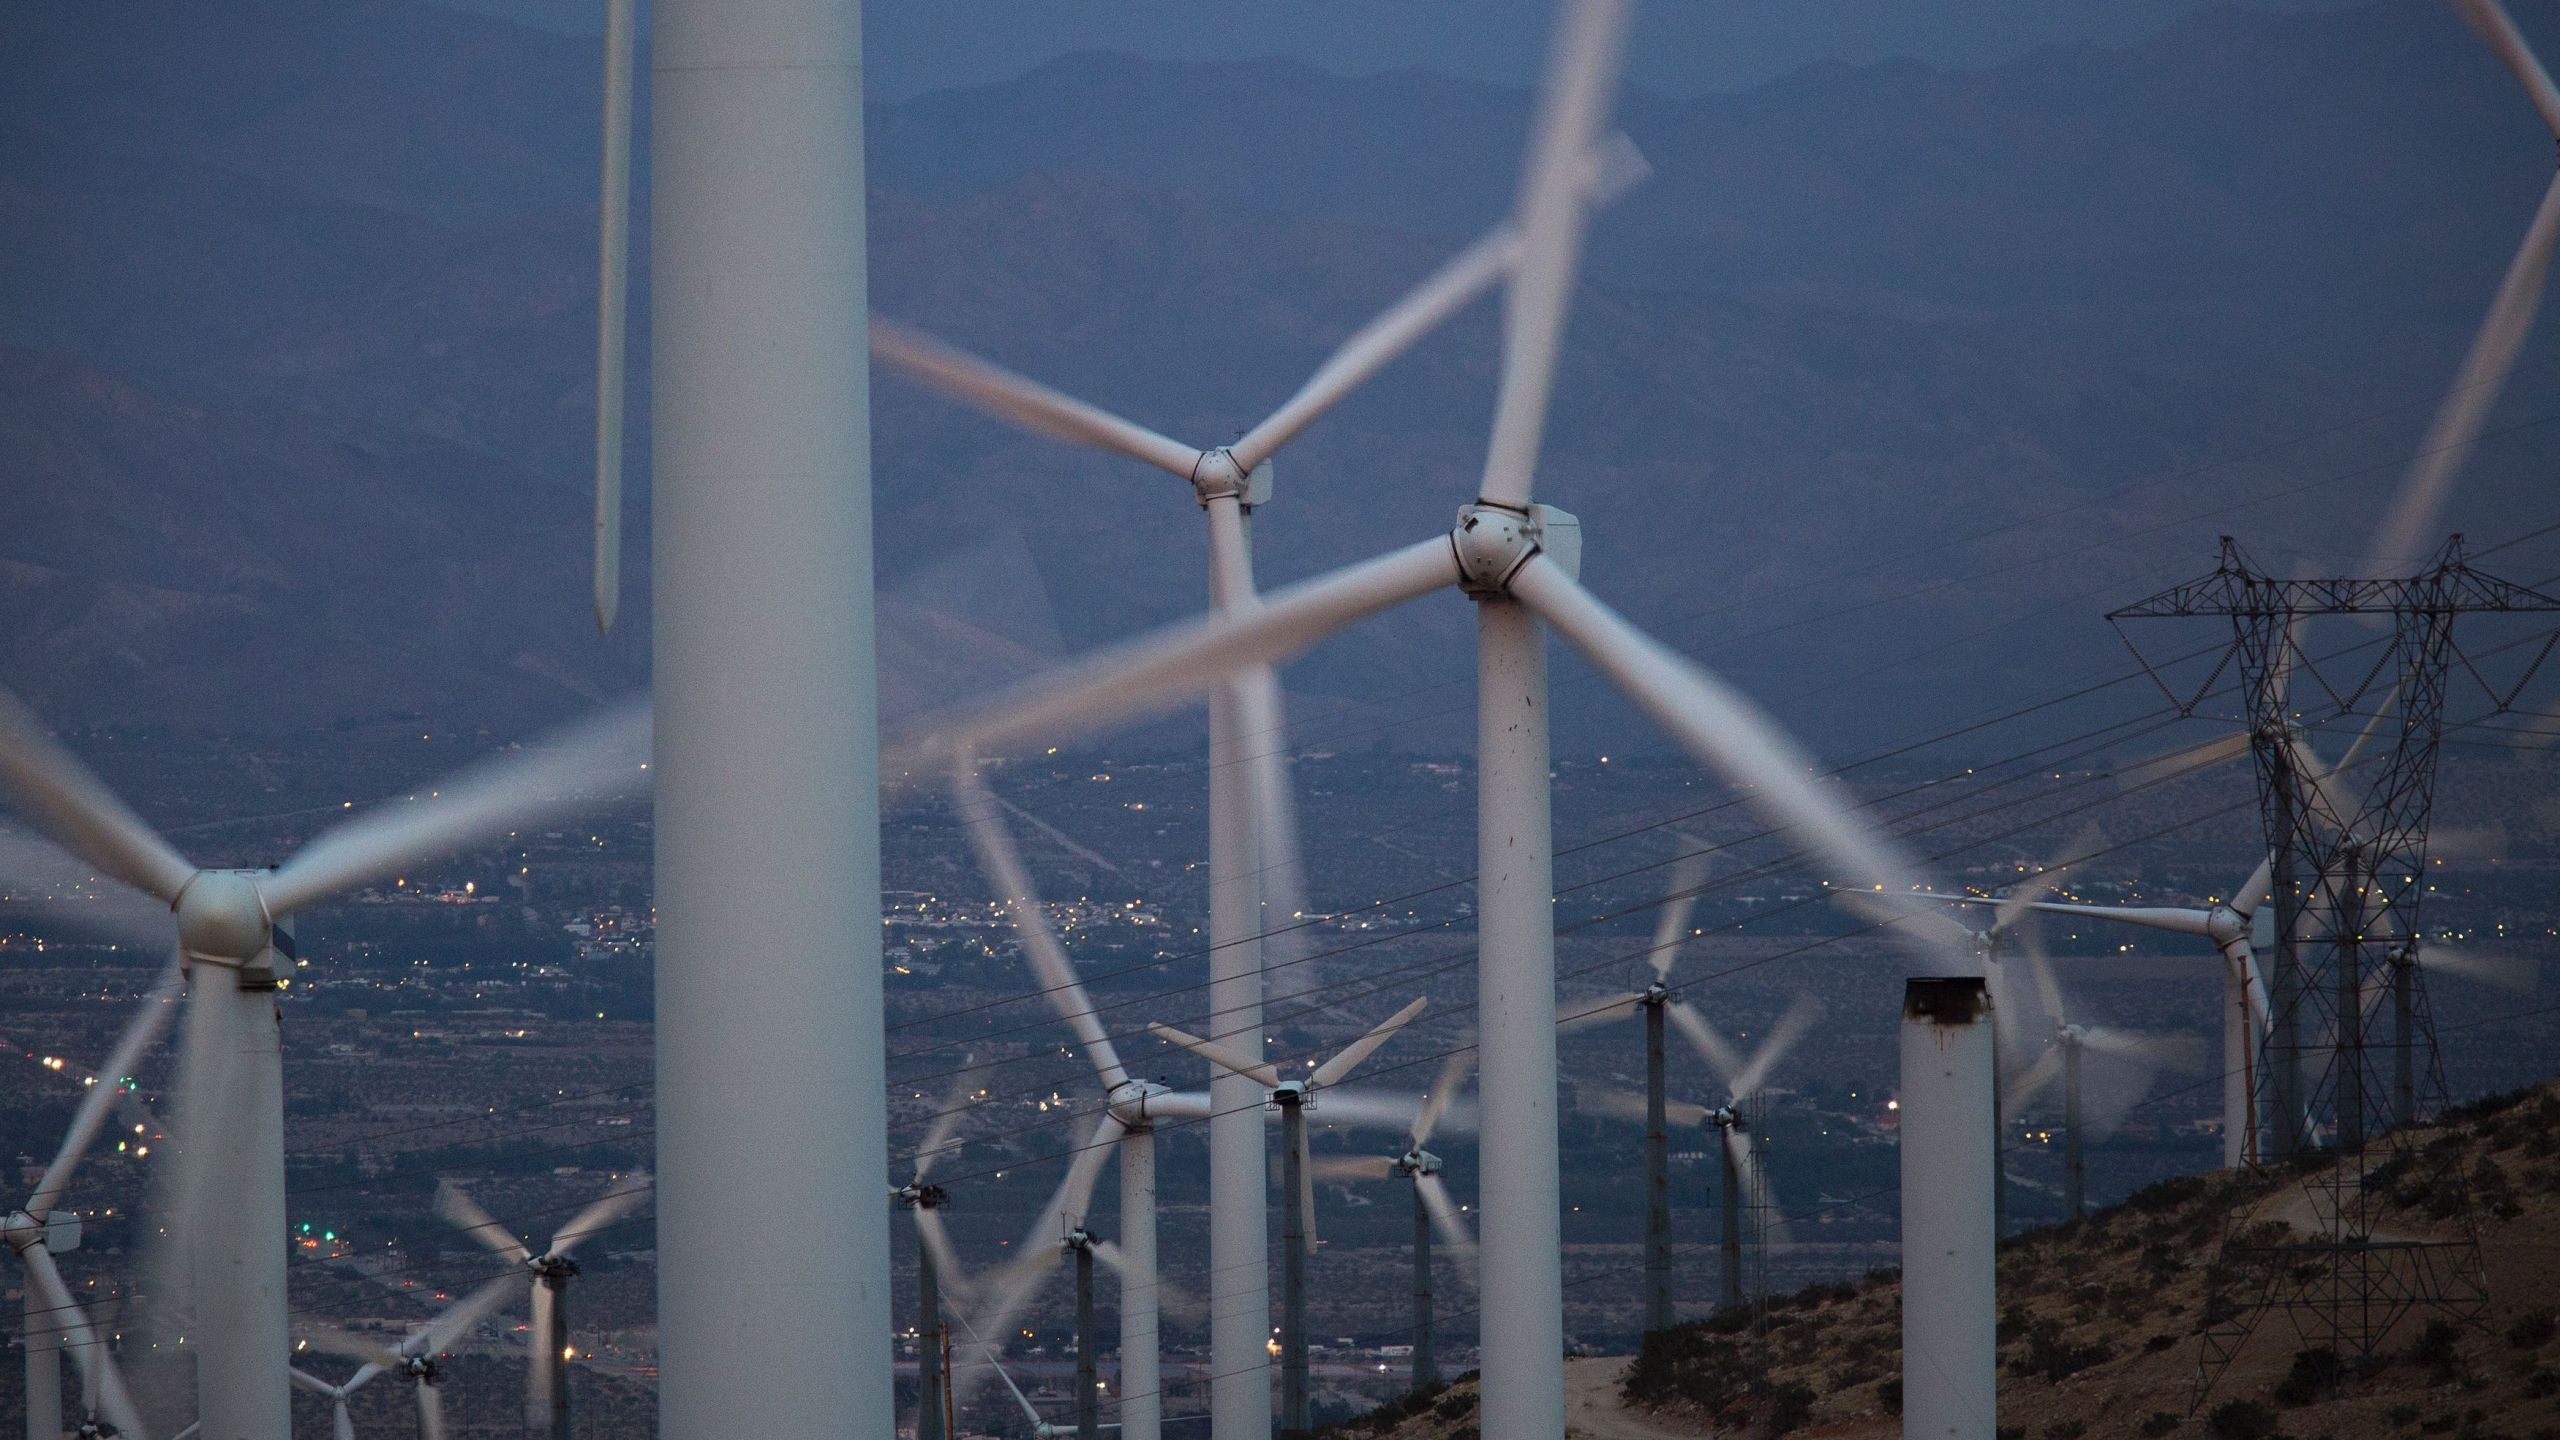 Electric energy generating wind turbines are seen on a wind farm in the San Gorgonio Pass area near Palm Springs on April 22, 2016. (Credit: David McNew / AFP / Getty Images)